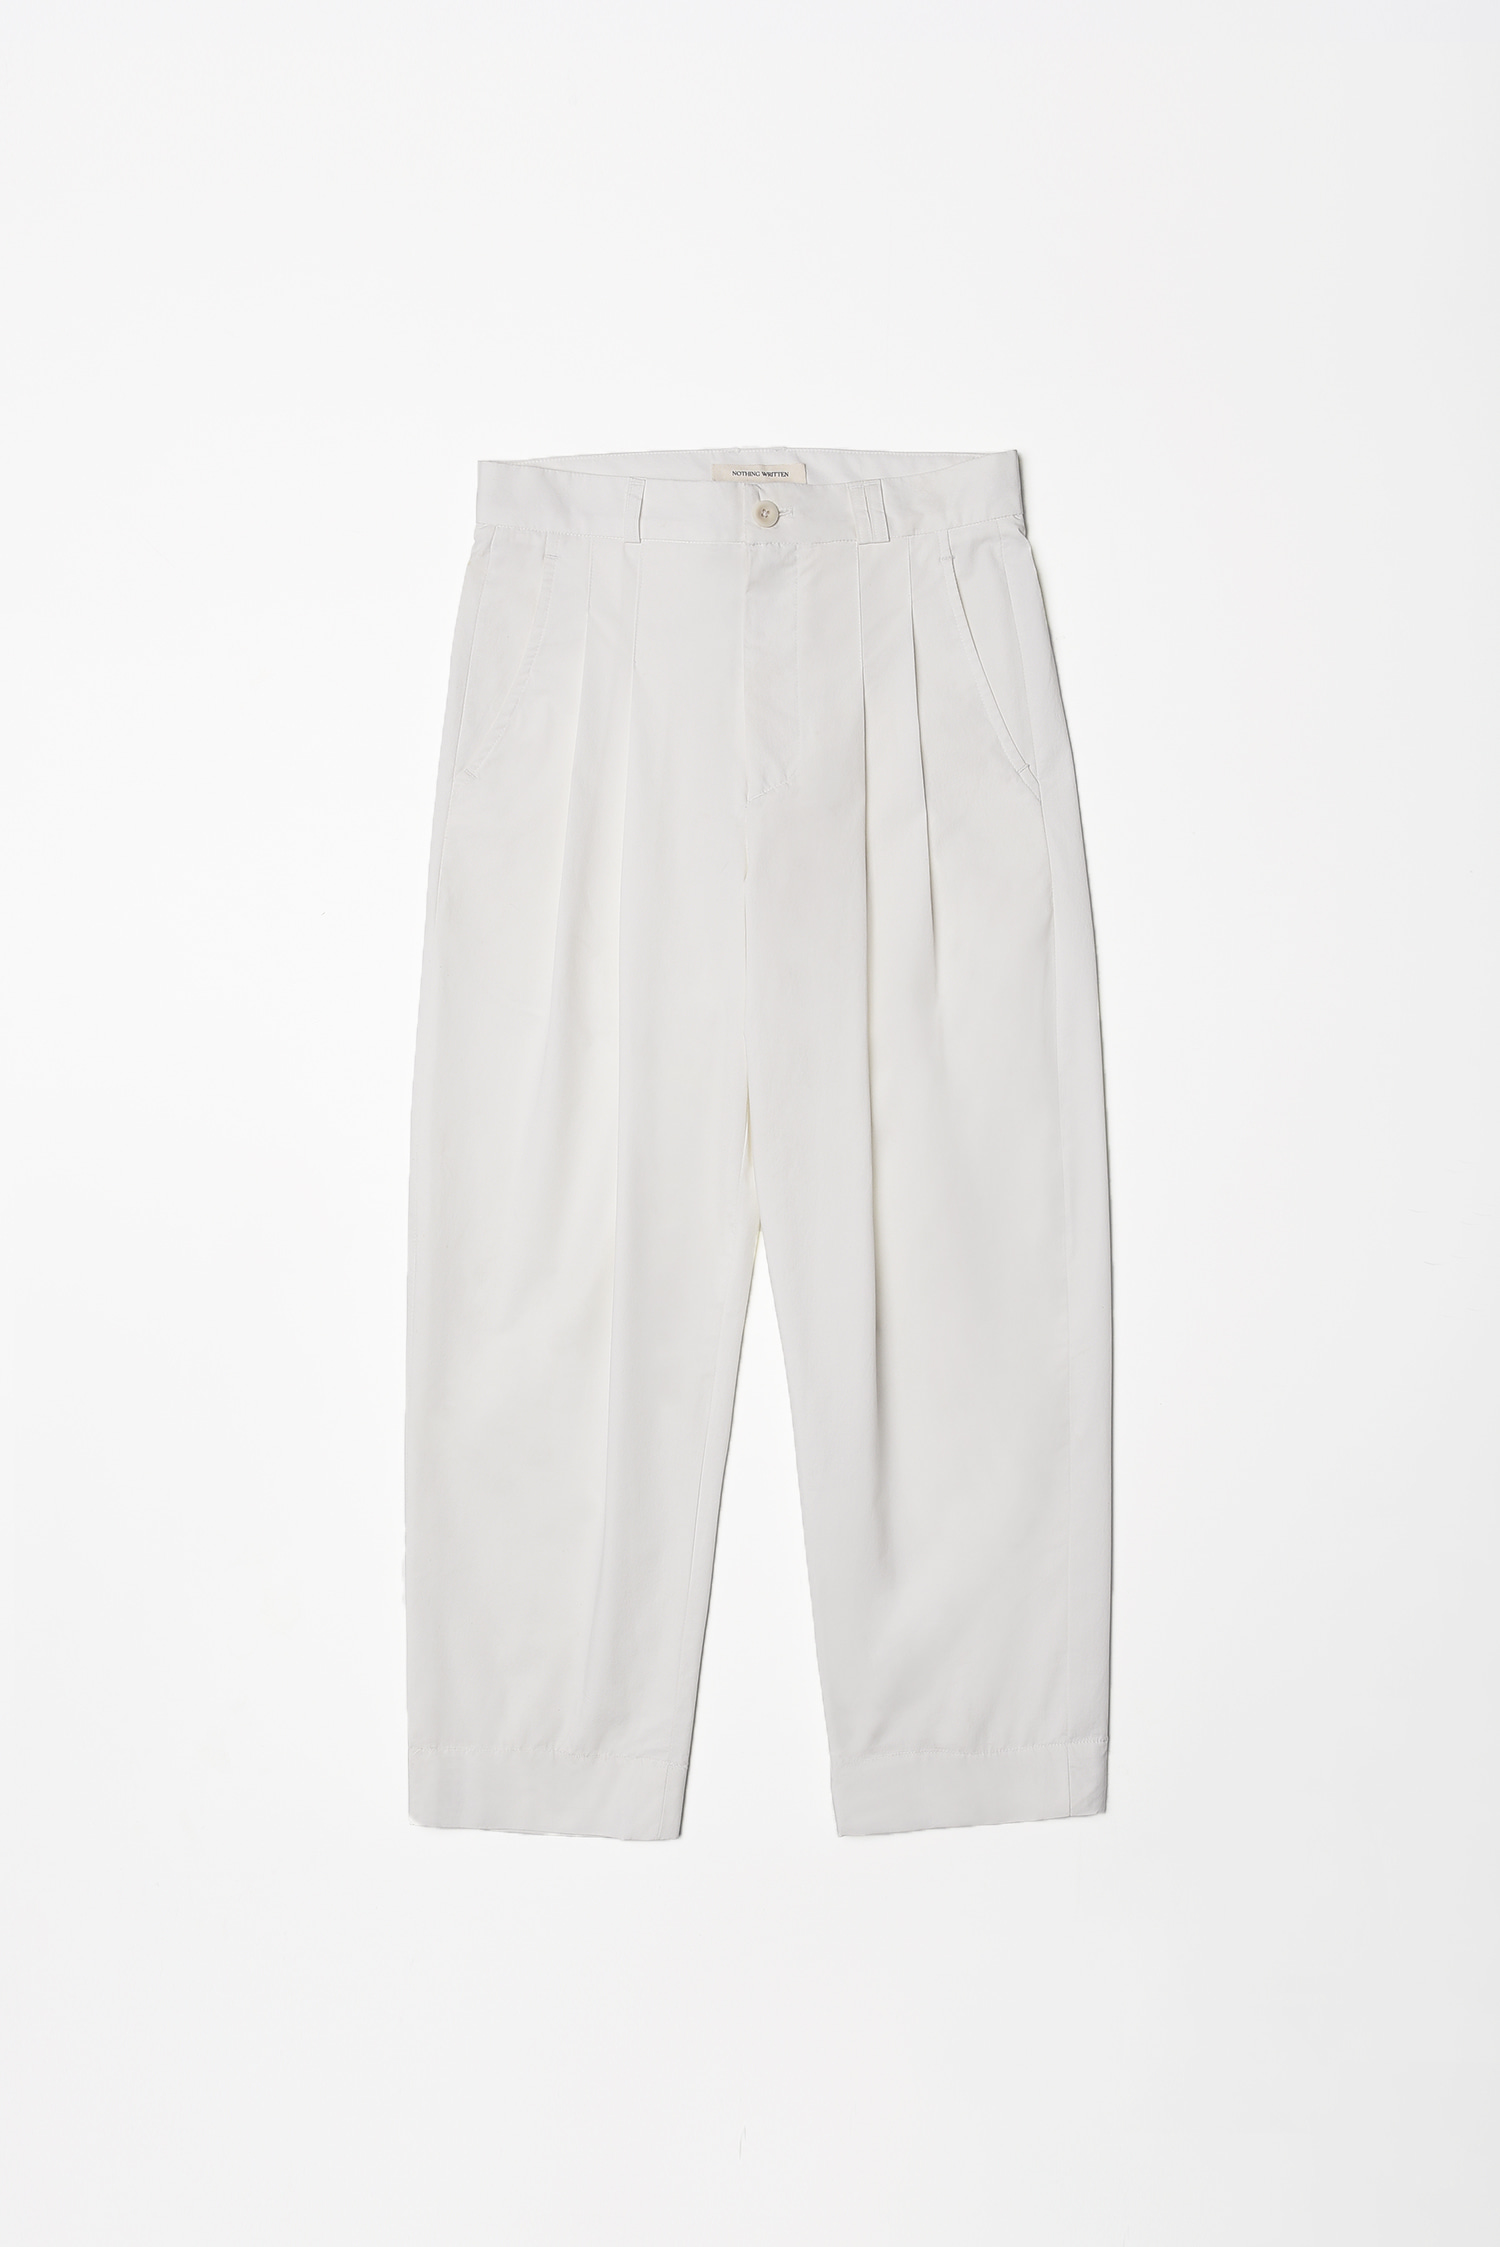 Cotton tuck pants (off white)